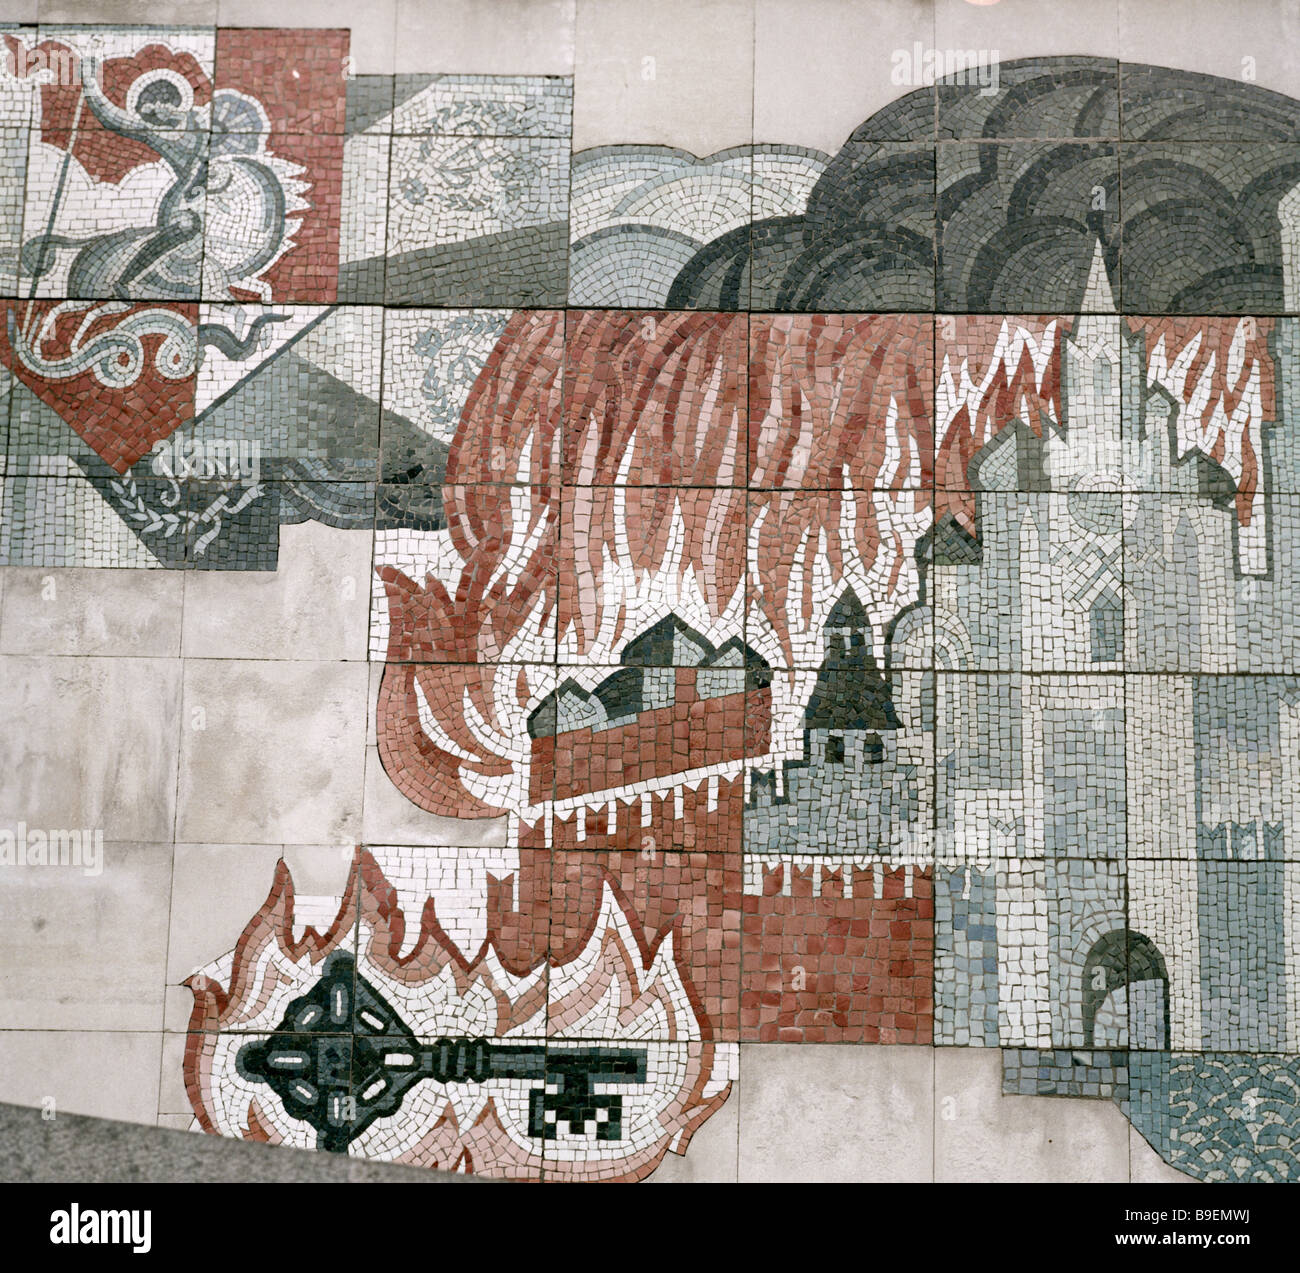 Thalberg The People s Militia and the Moscow Conflagration Mosaic on the outer wall of the Battle of Borodino museum - Stock Image